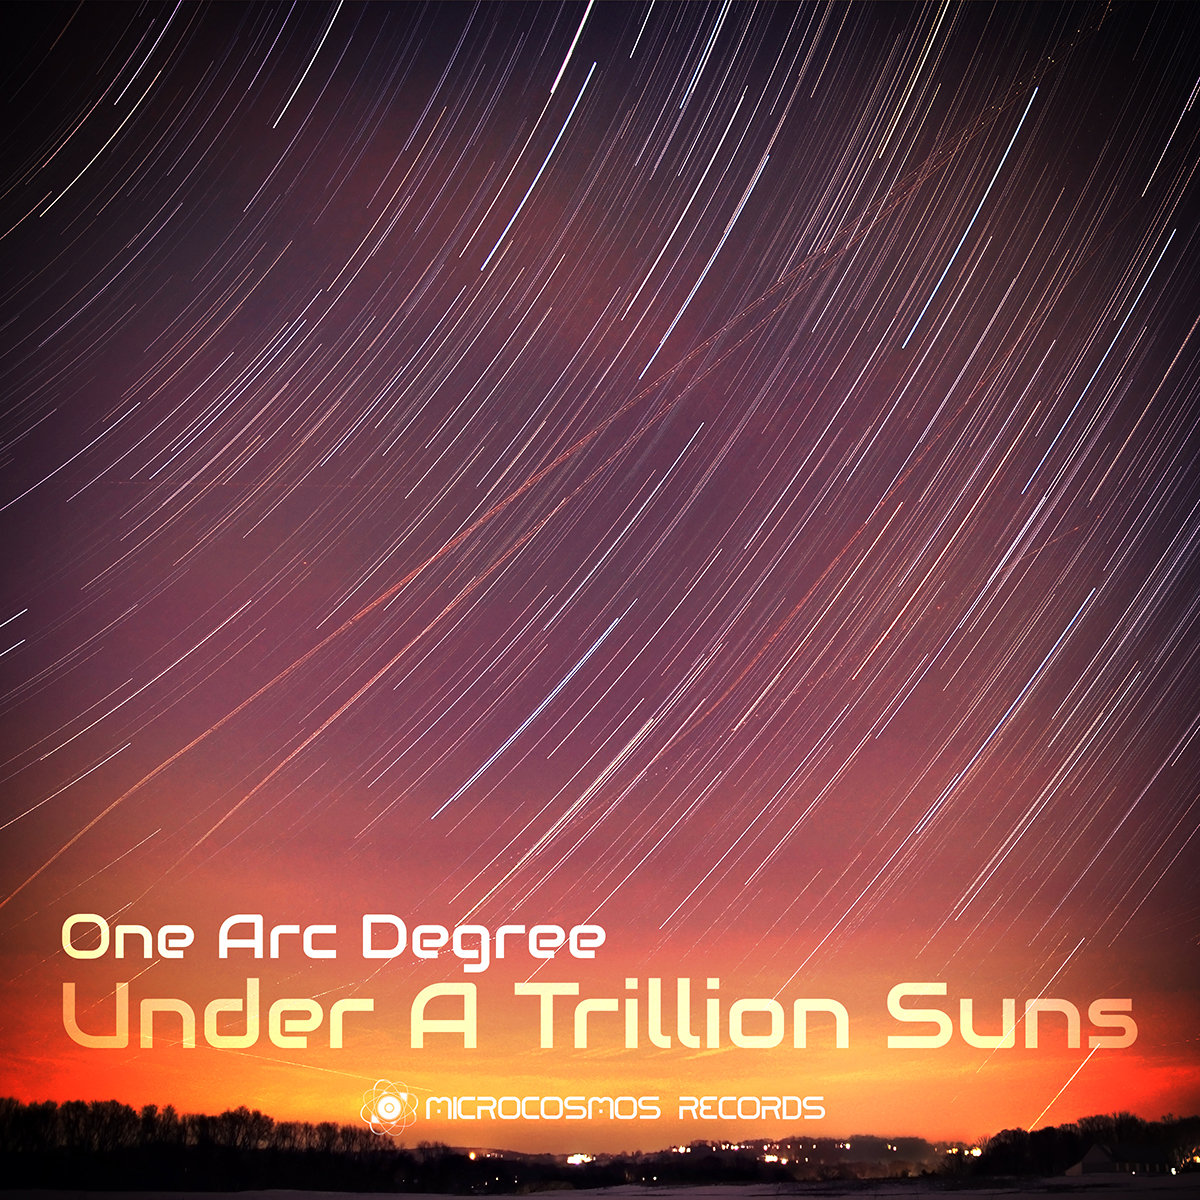 One Arc Degree - The Star Orchard @ 'Under A Trillion Suns' album (ambient, chill-out)